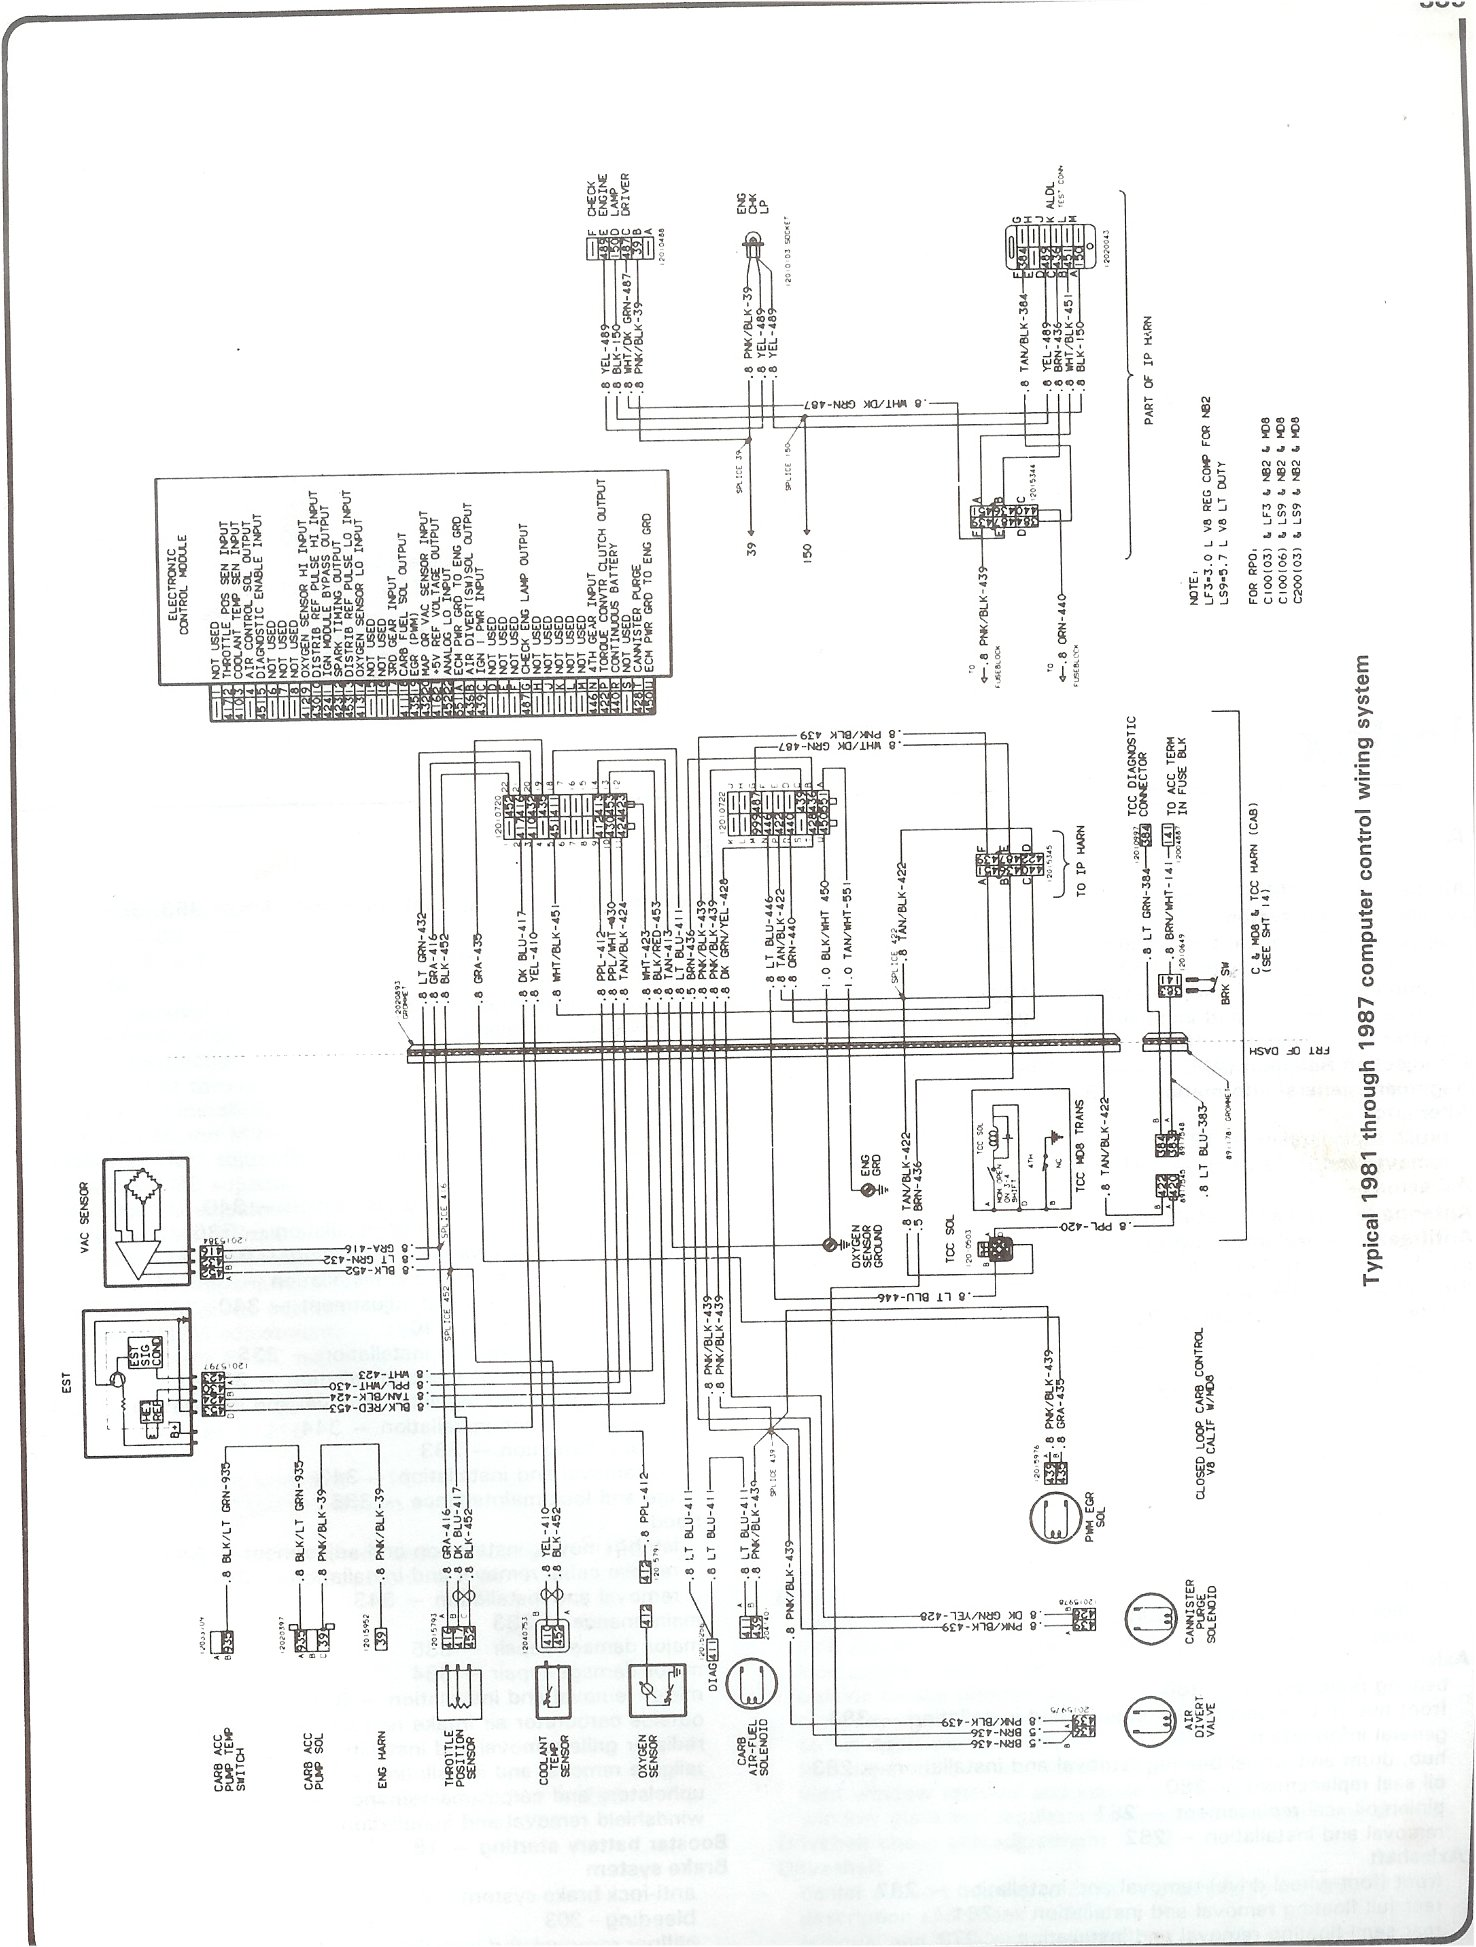 Chevy Truck Wiring Data Diagram Generator Harness Complete 73 87 Diagrams 81 Computer Control